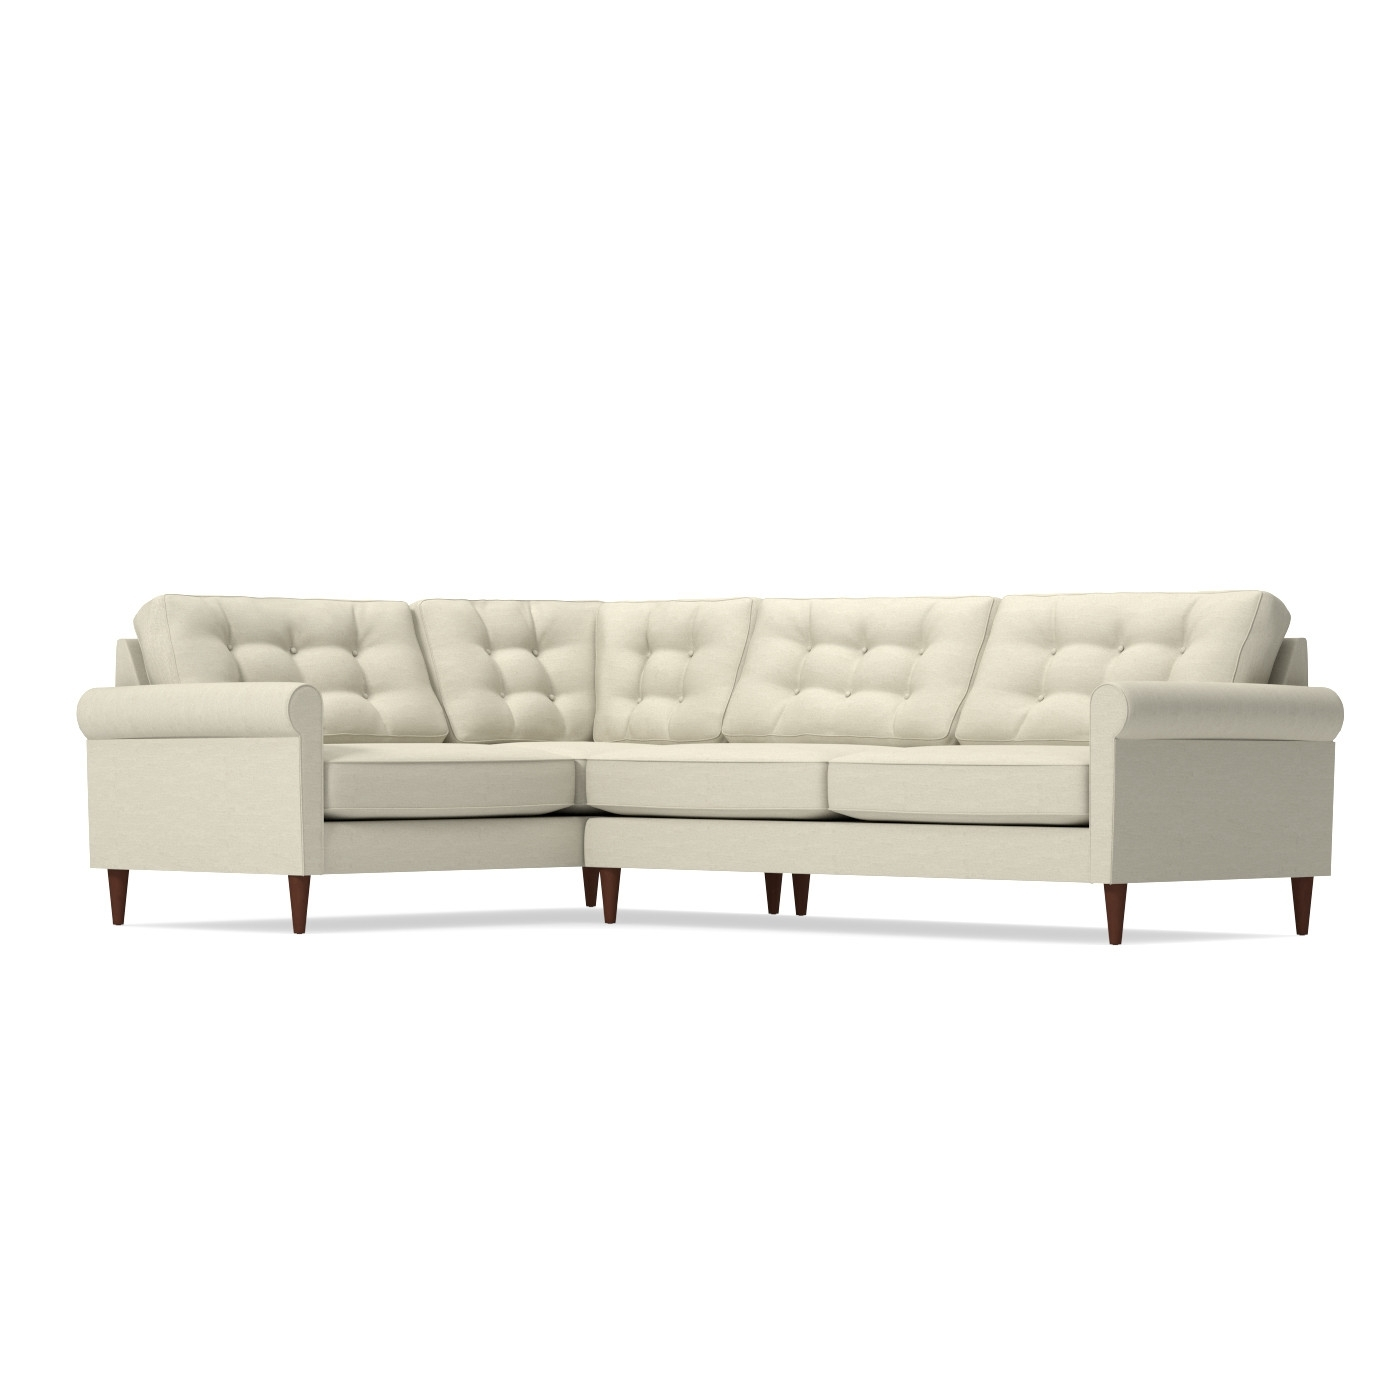 St Louis Sectional Sofas For Current Hotelsbacau – Sectional Sofa Ideas (View 10 of 20)